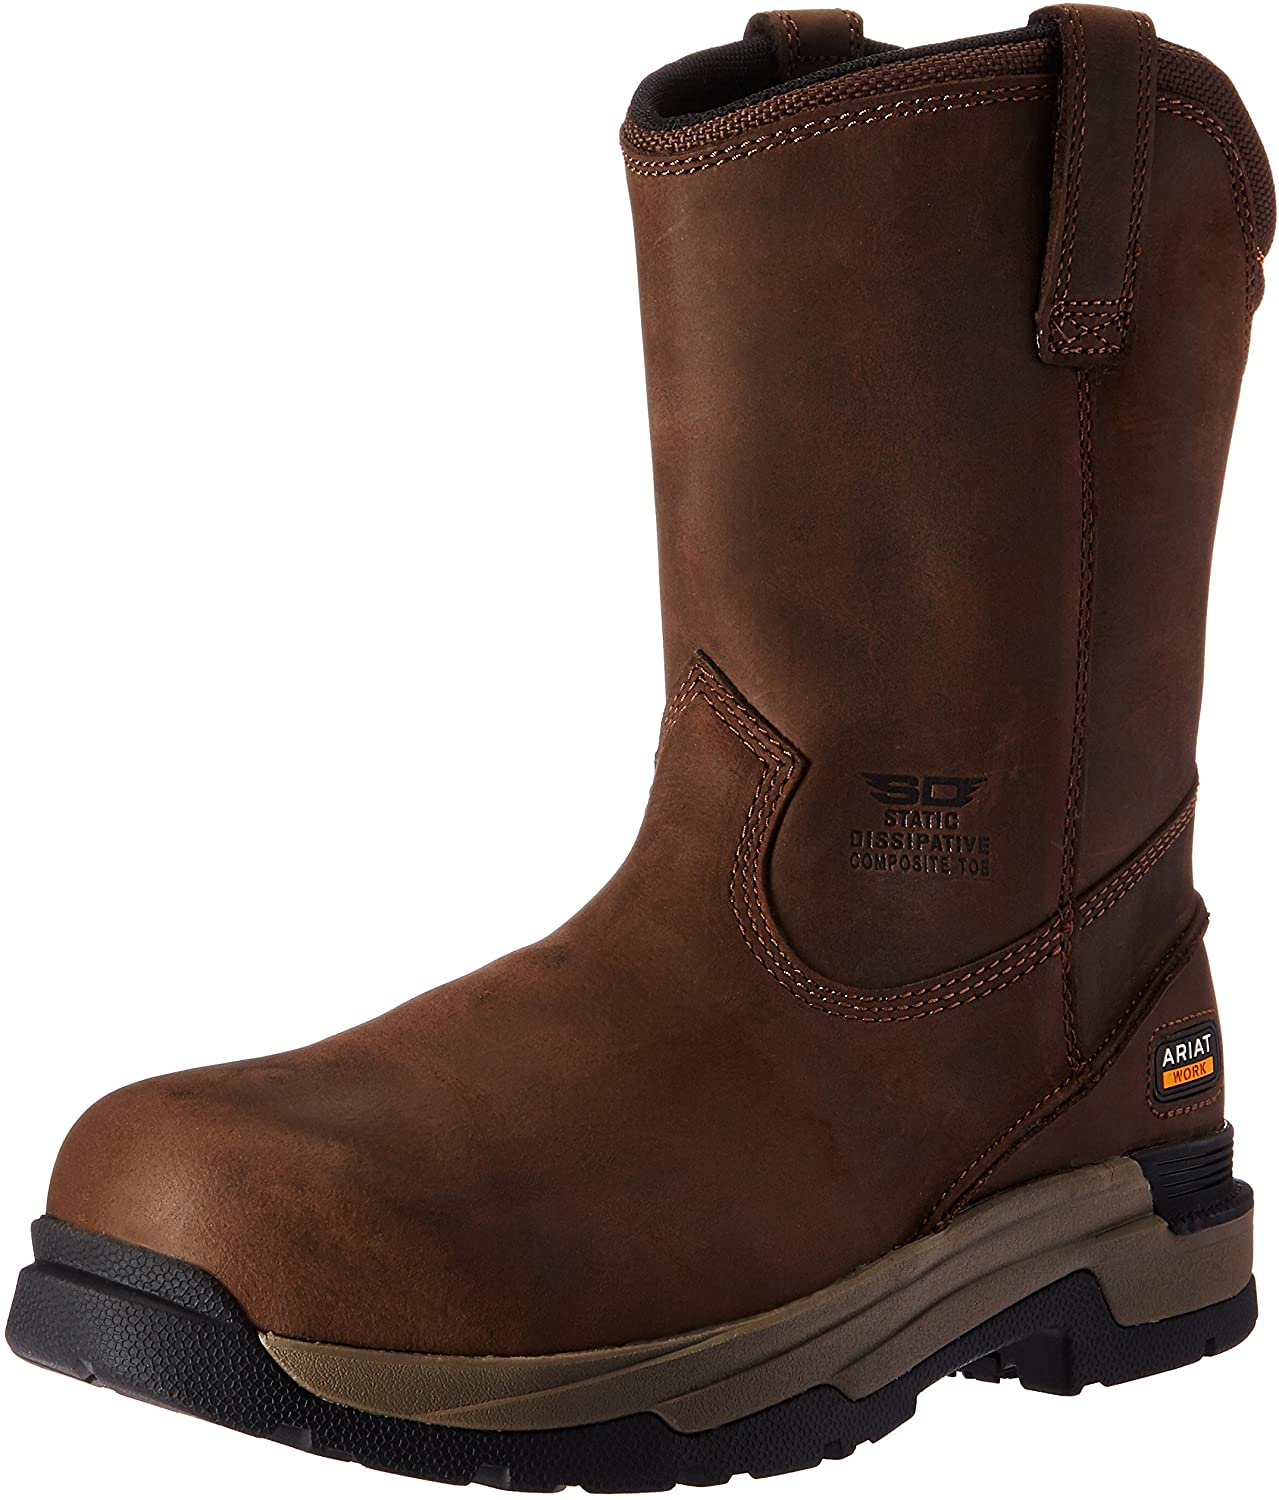 ARIAT Men's Mastergrip Static Dissipative Composite Toe Work Boot